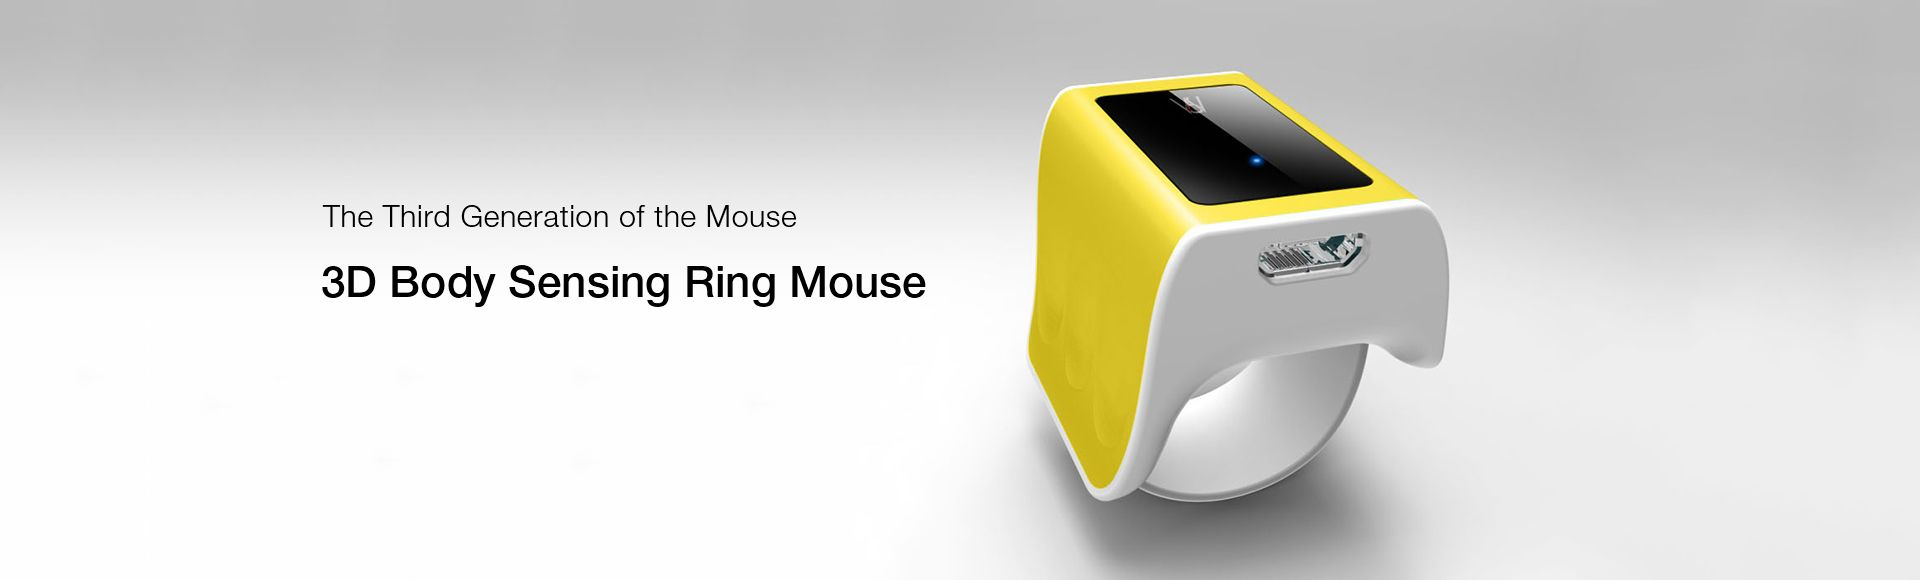 F-ONE 3D Body Sensing Ring Mouse - the third generation of the mouse